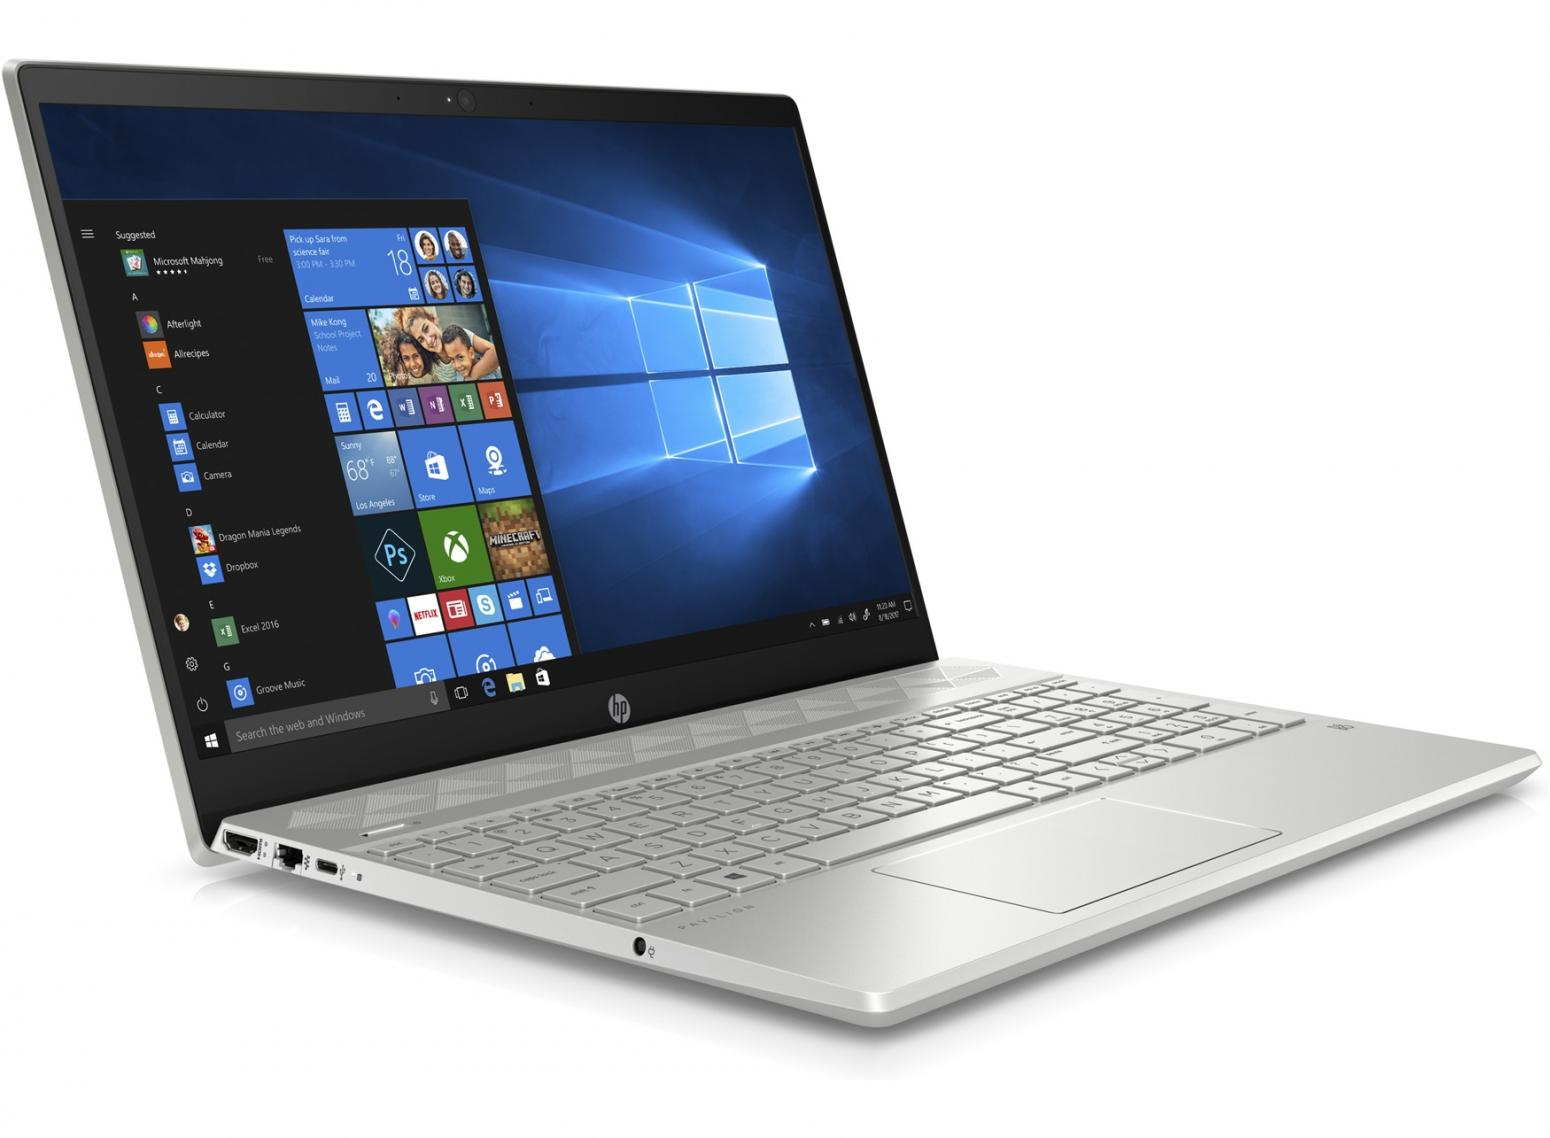 Ordinateur portable HP Pavilion 15-cs3020nf Argent - RAM 16 Go, Wi-Fi ax - photo 1